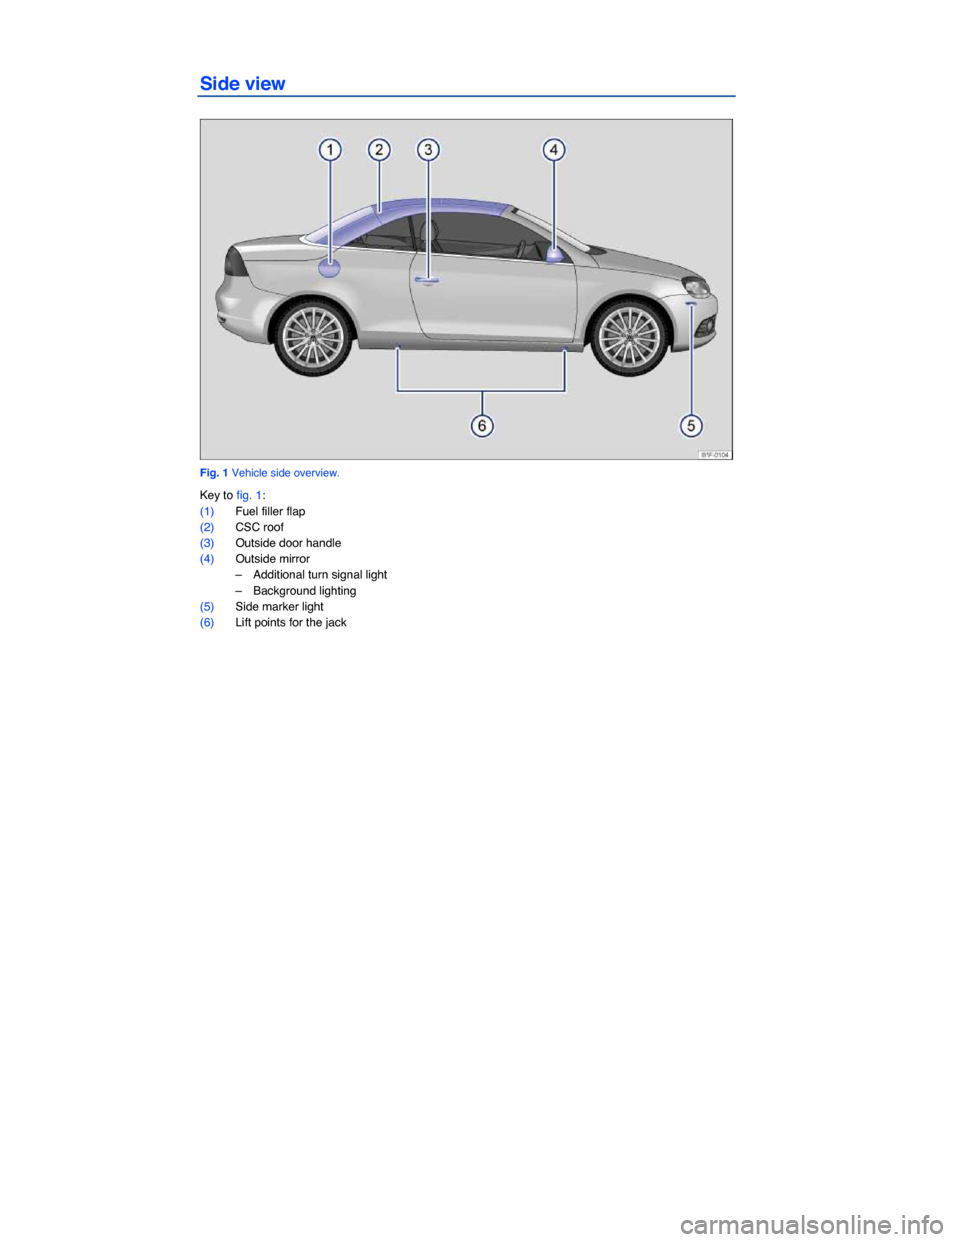 VOLKSWAGEN EOS 2013 1.G Owners Manual   Side view    Fig. 1 Vehicle side overview.  Key to fig. 1:  (1) Fuel filler flap   (2) CSC roof   (3) Outside door handle   (4) Outside mirror   –  Additional turn signal light  –  Background li